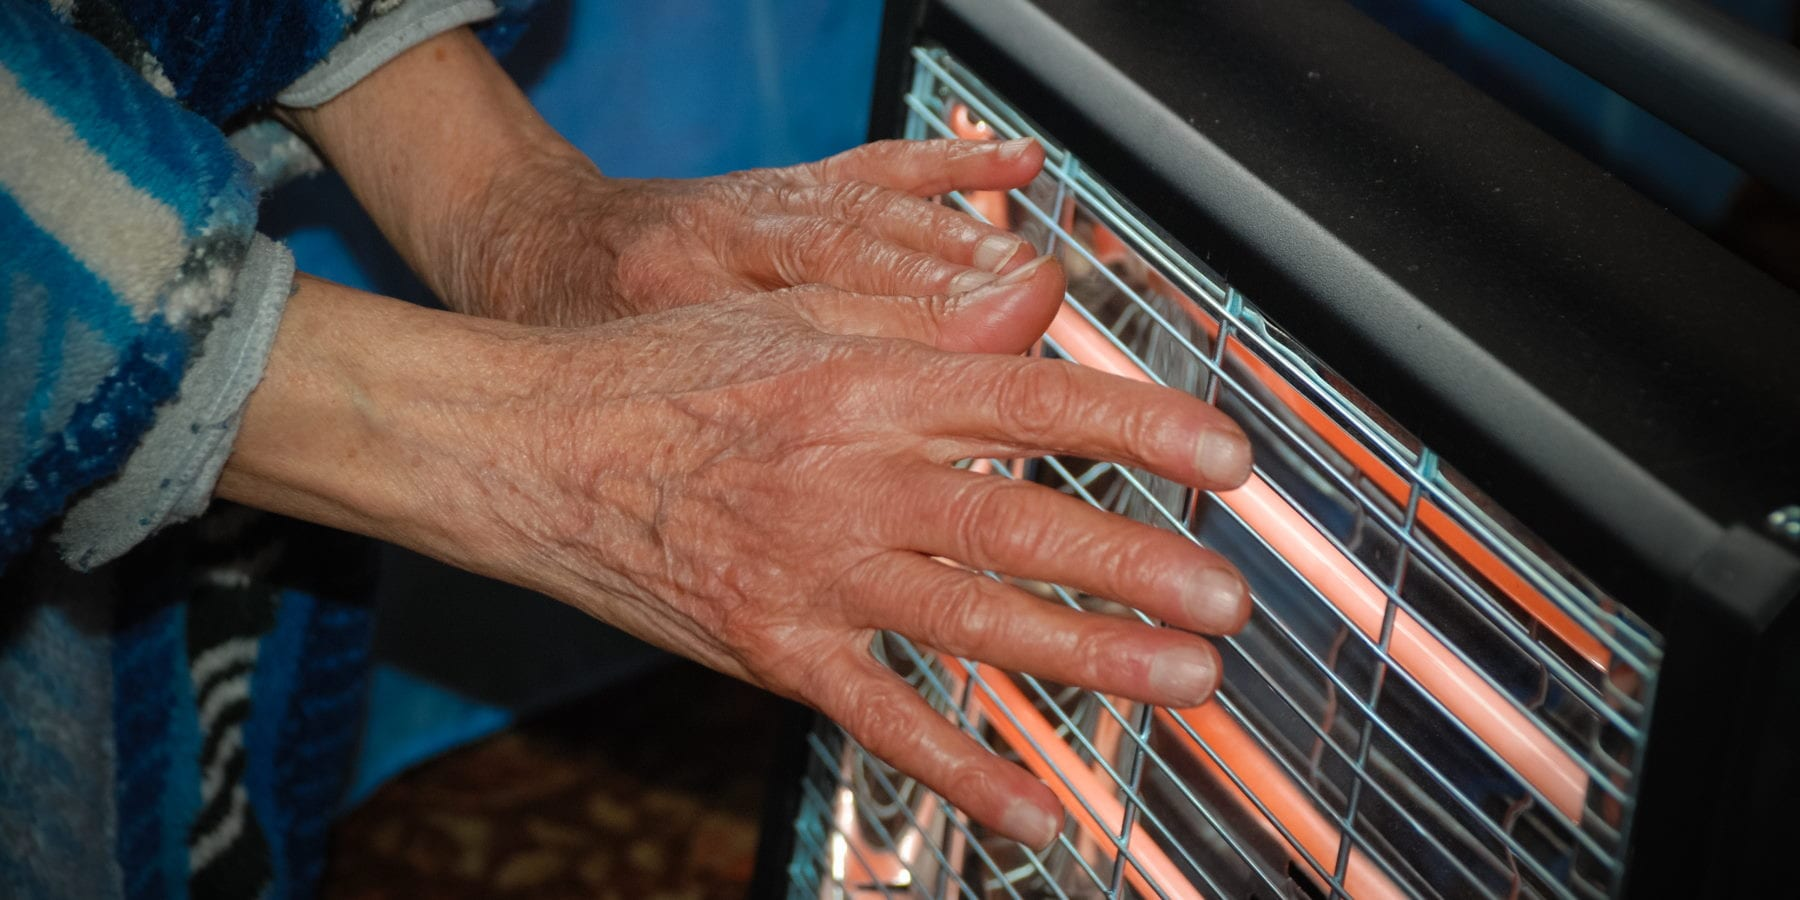 a closeup of hands warming in front of a space heater.